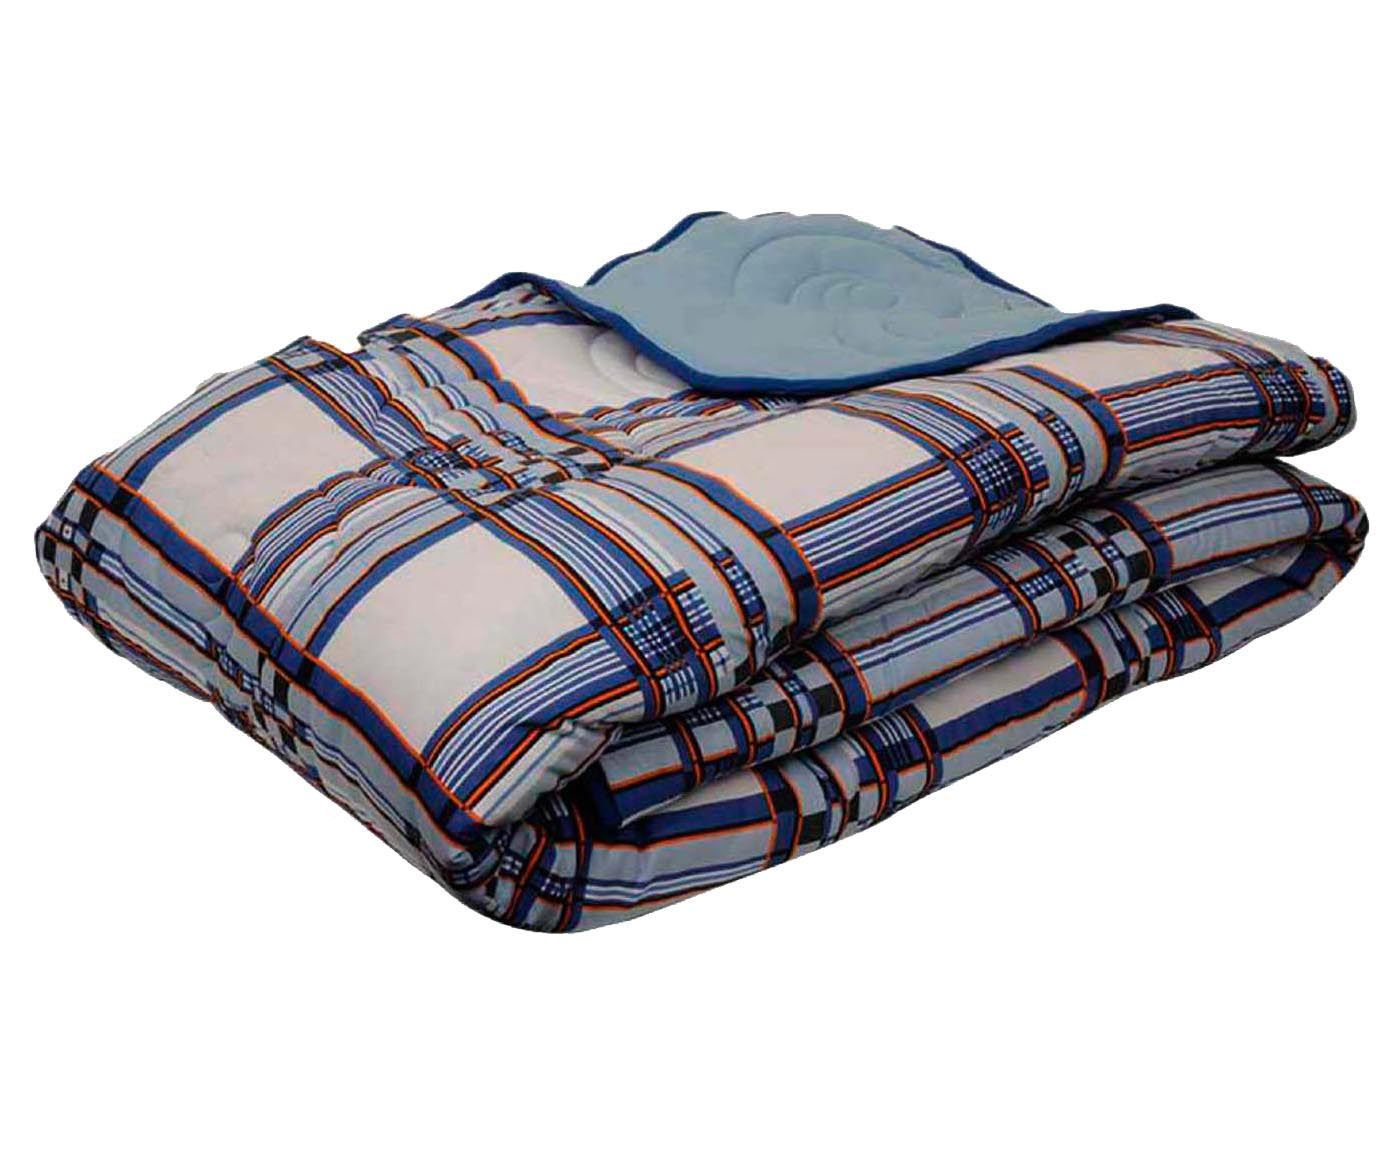 Edredom bed men - para cama queen size   Westwing.com.br